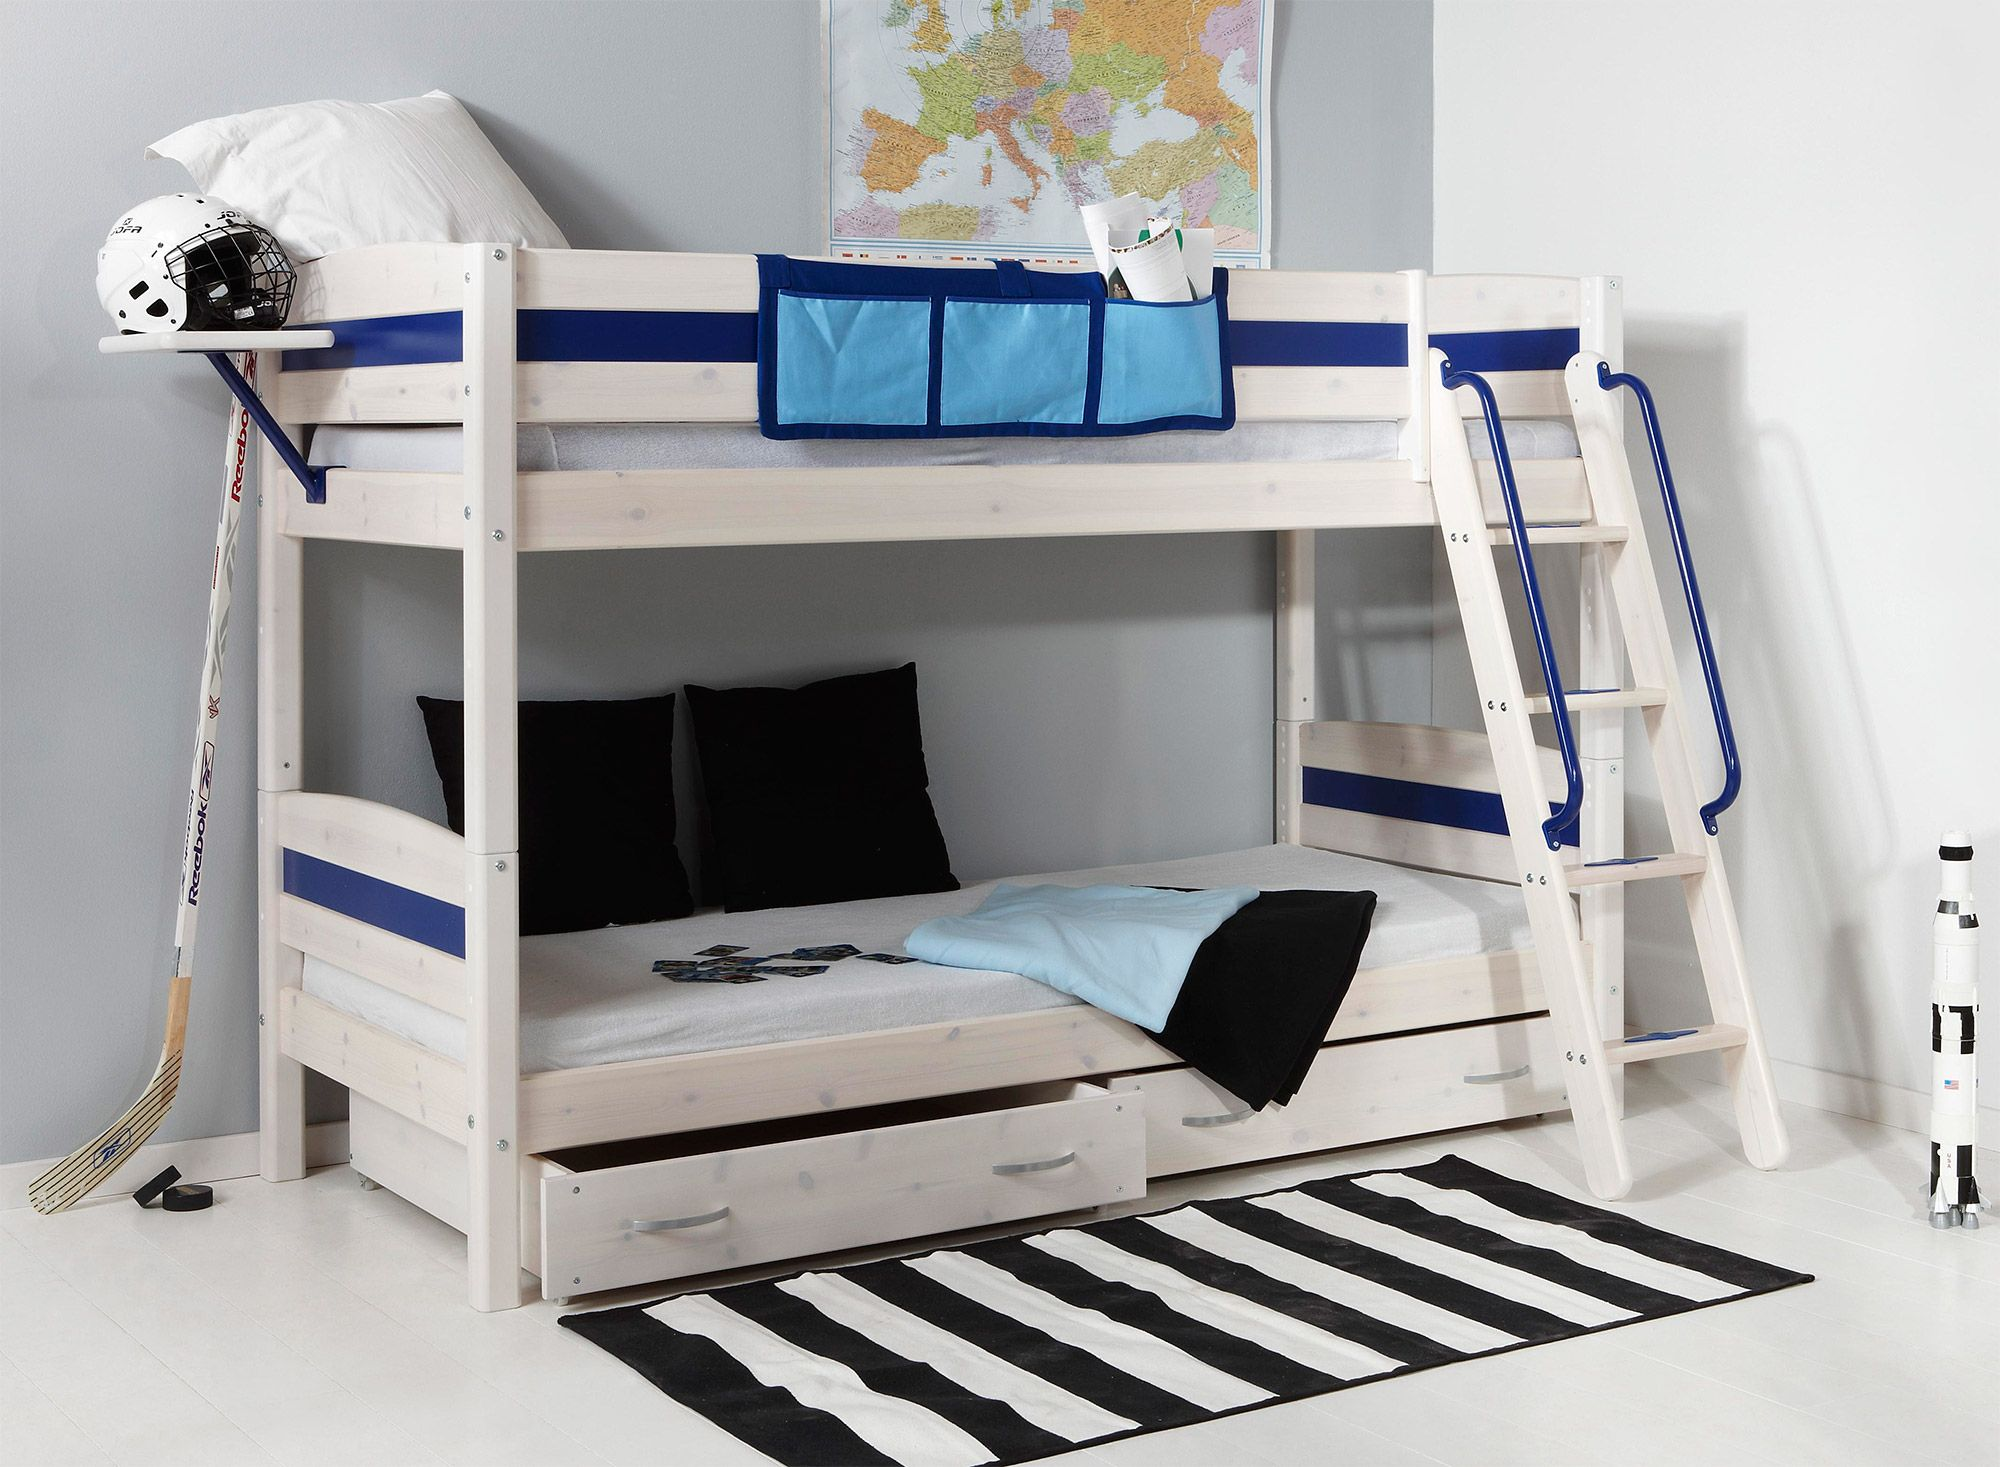 Thuka Hit 6 Bunk bed with Underbed Drawers Pine bunk